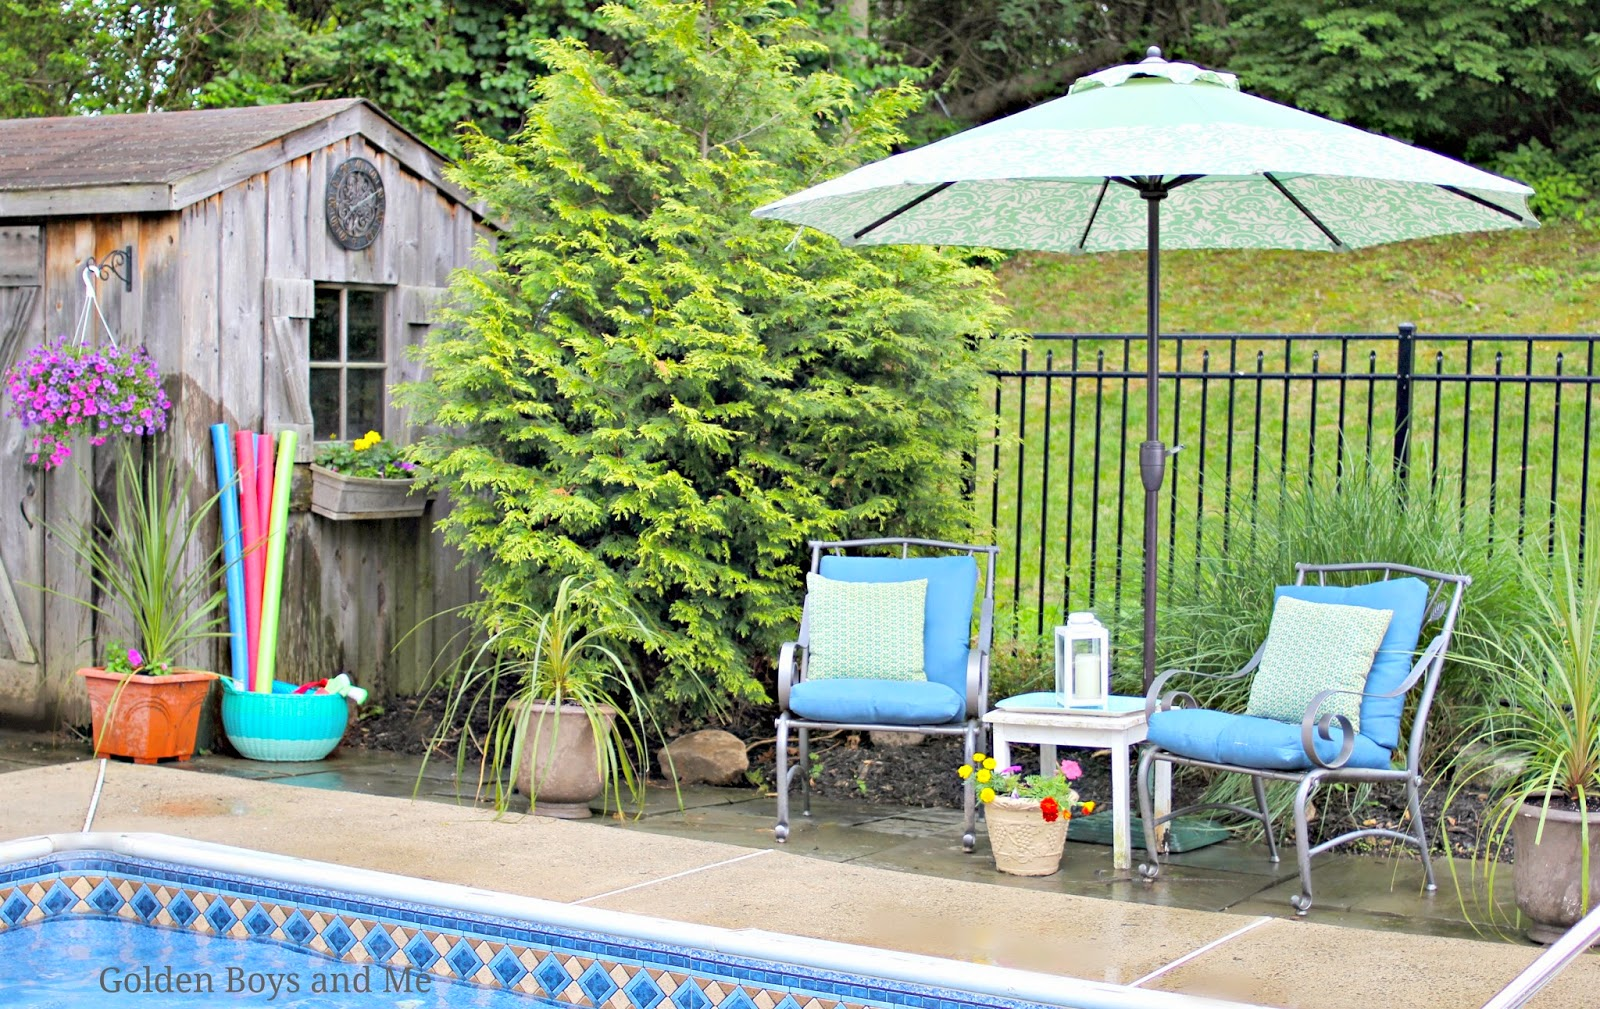 Pool and Patio ideas-www.goldenboysandme.com